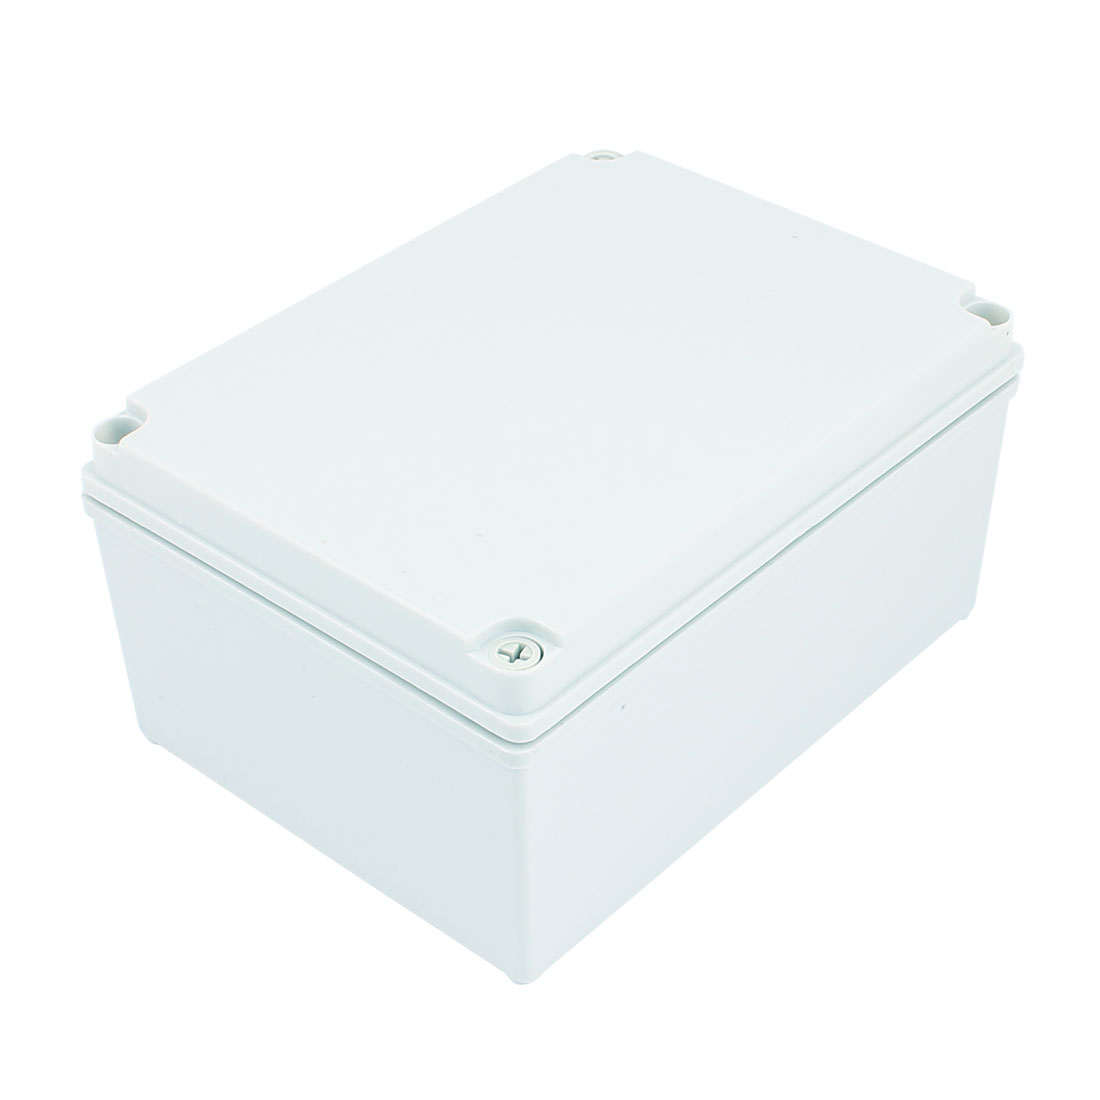 Dustproof IP65 Junction Box DIY Terminal Connection Enclosure Adaptable 192mm x142mm x 92mm